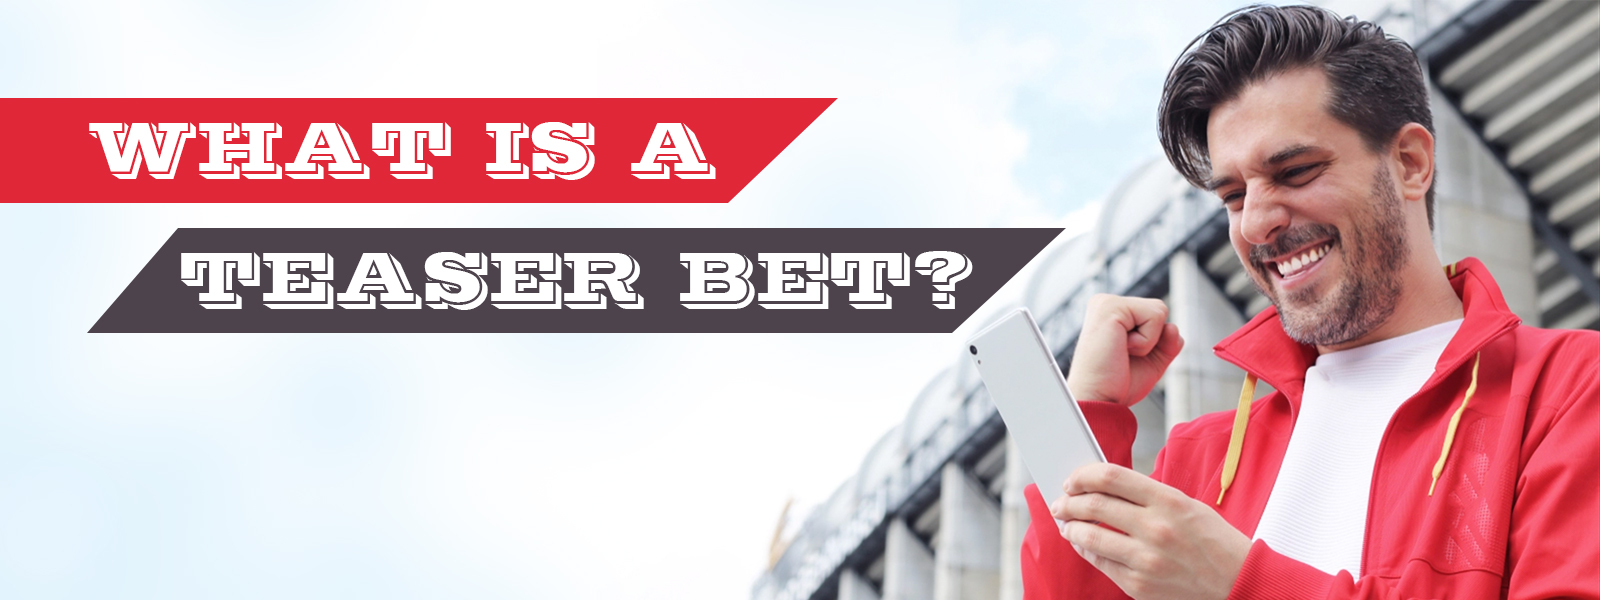 Do You Know What Is Teaser Bet?